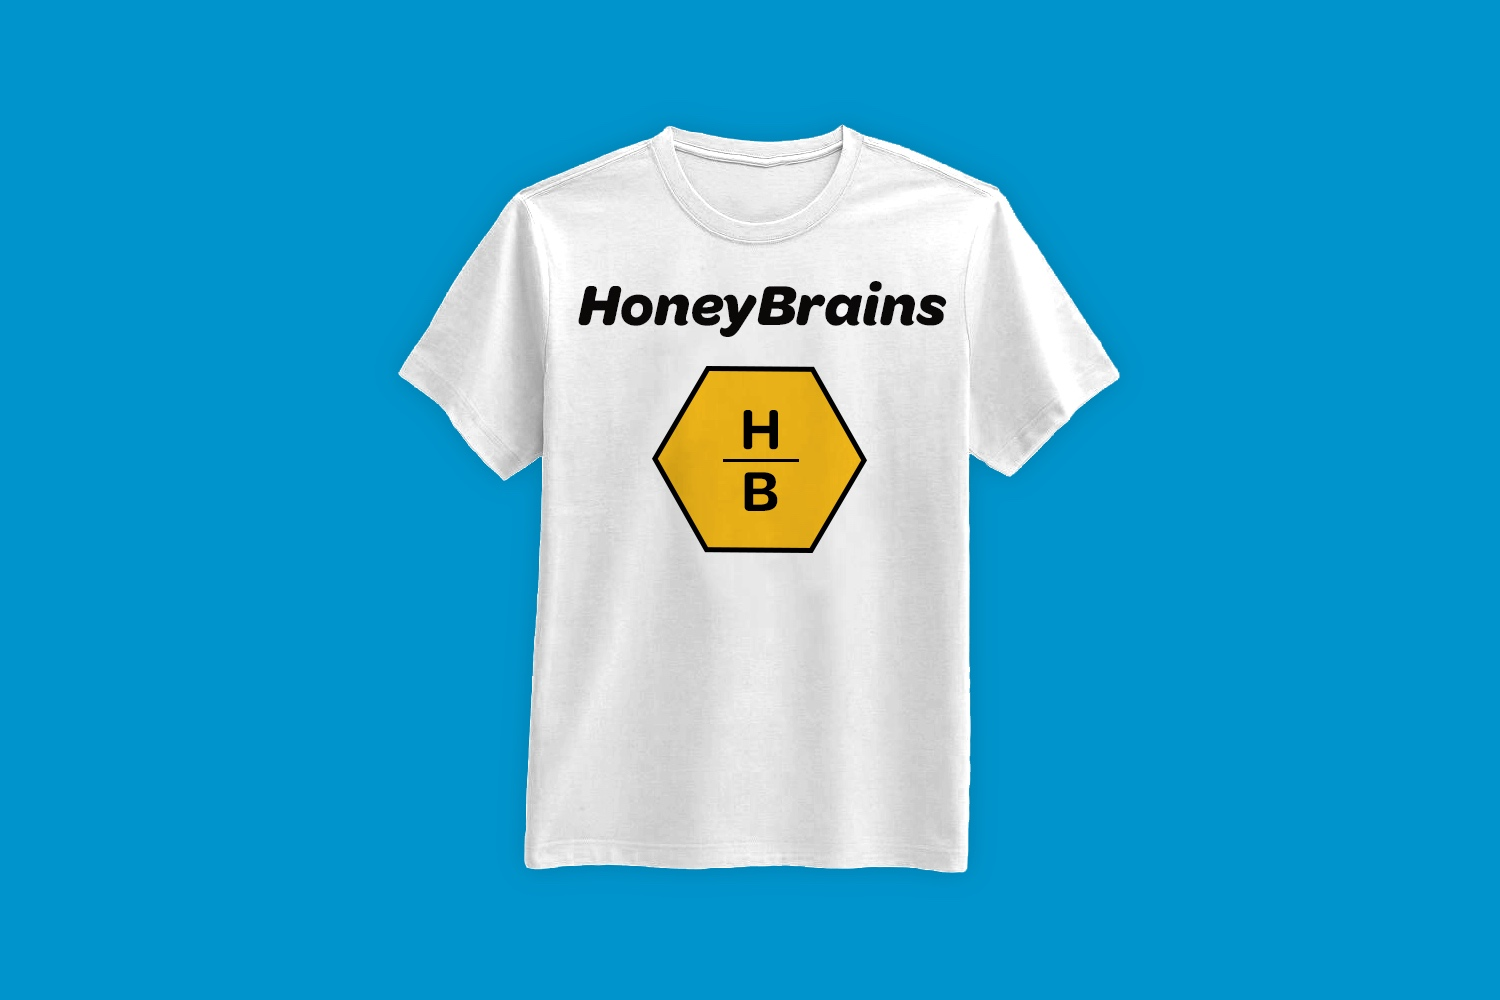 HoneyBrains T-Shirt Design.jpg